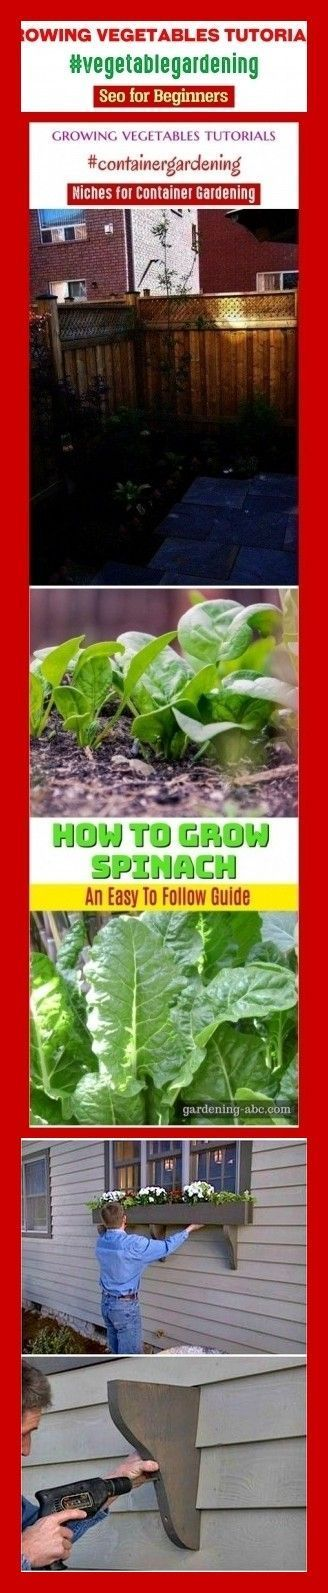 Tutorials zum Anbau von Gemüse #vegetablegardening #niches #seo #keywords #gardens …   – greenhouse gardening